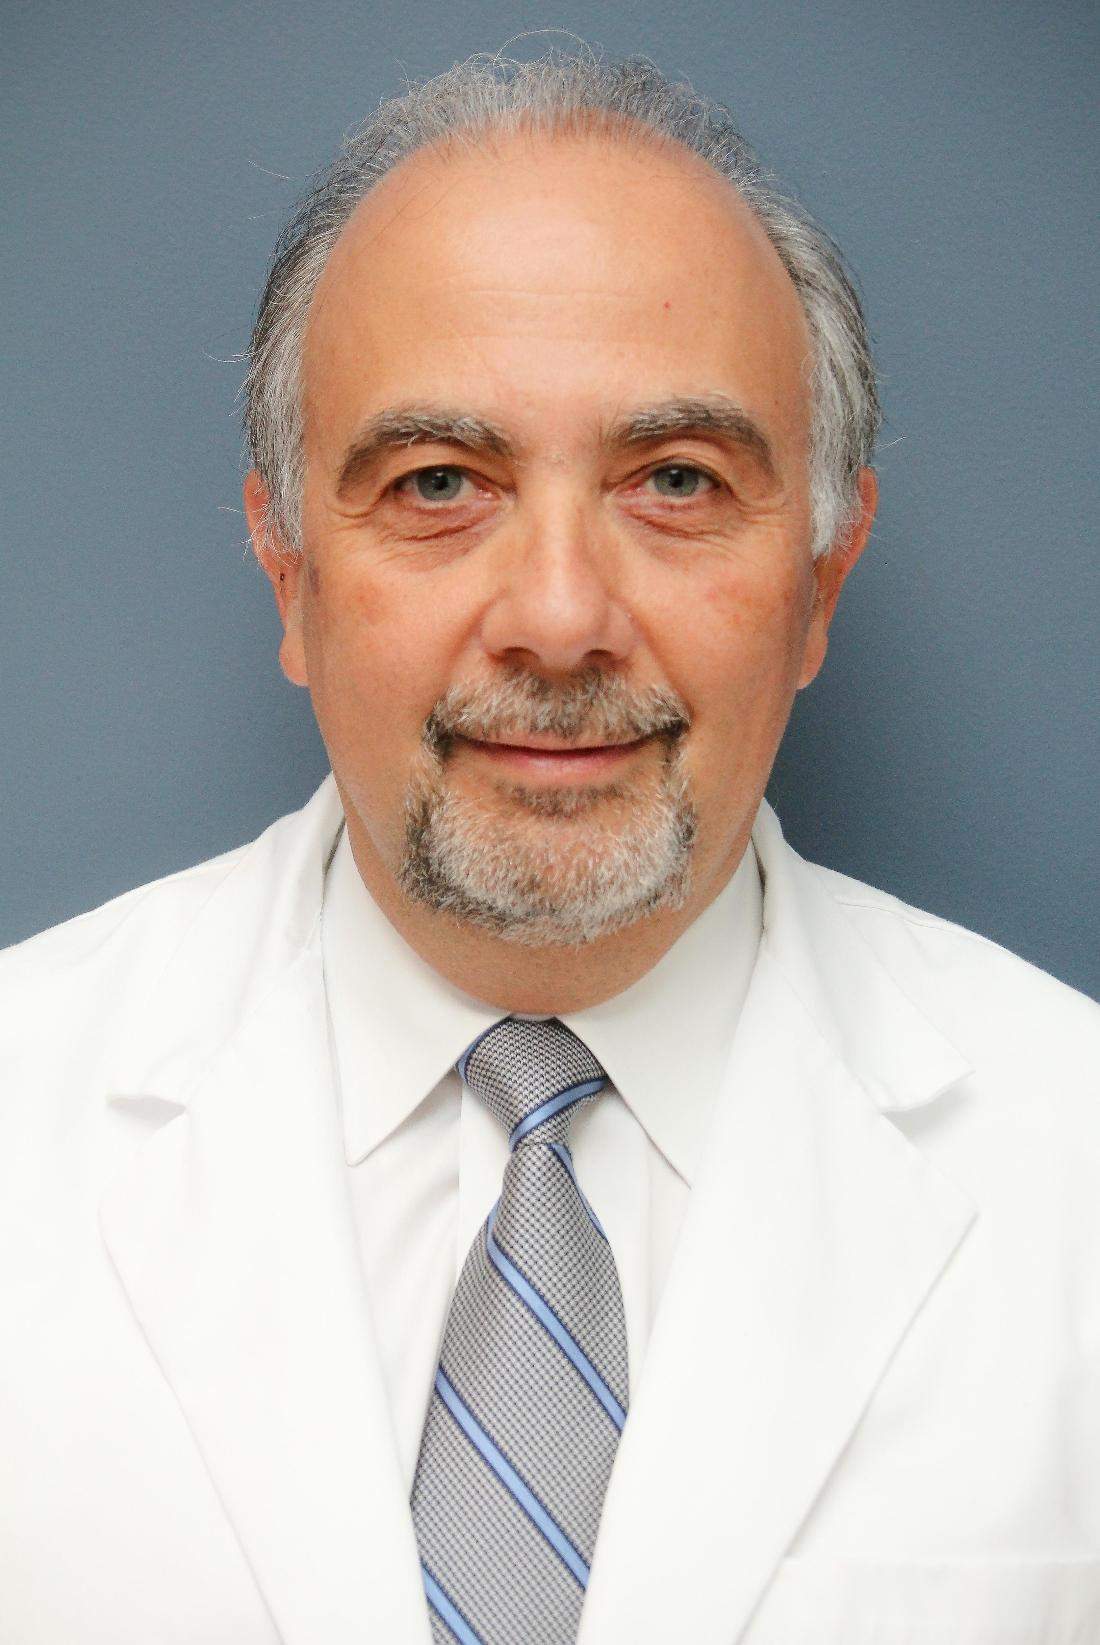 Peter TsatsaronisDMD